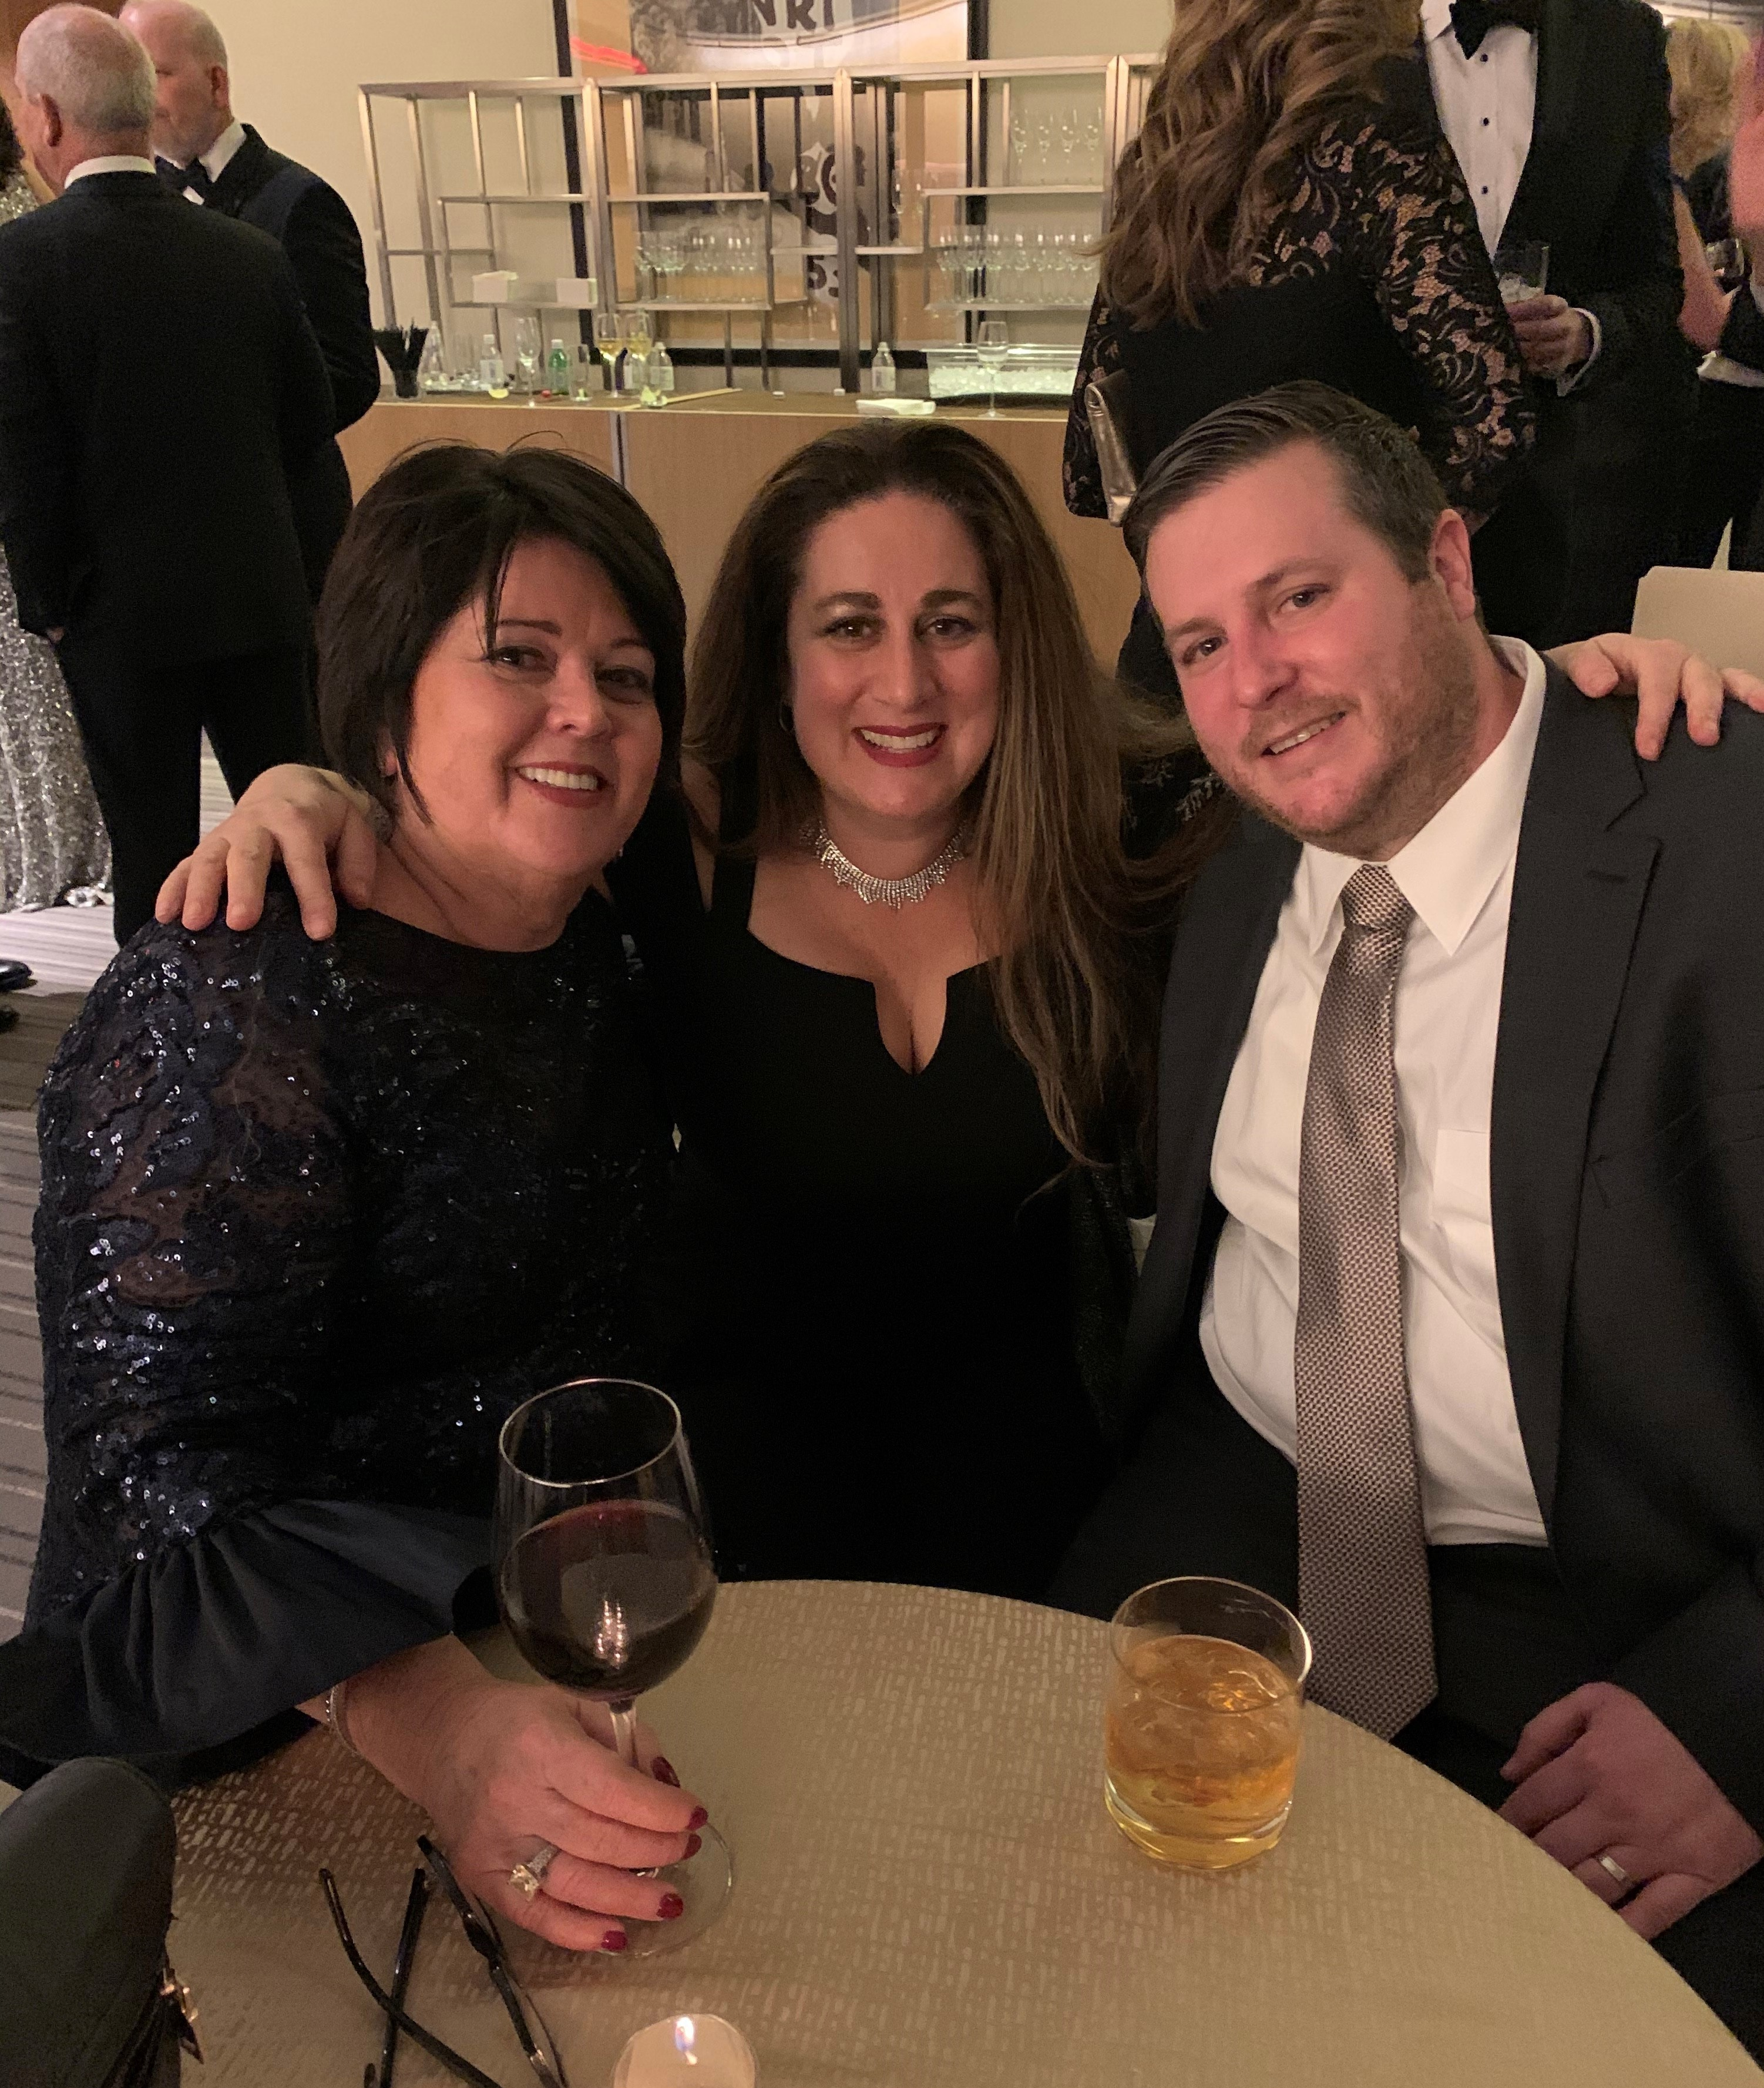 Anne Marie Moebes, Jennifer Arango, and Louis Intreglia from TMR attending the Tourism Cares Awards at the Conrad Hotel